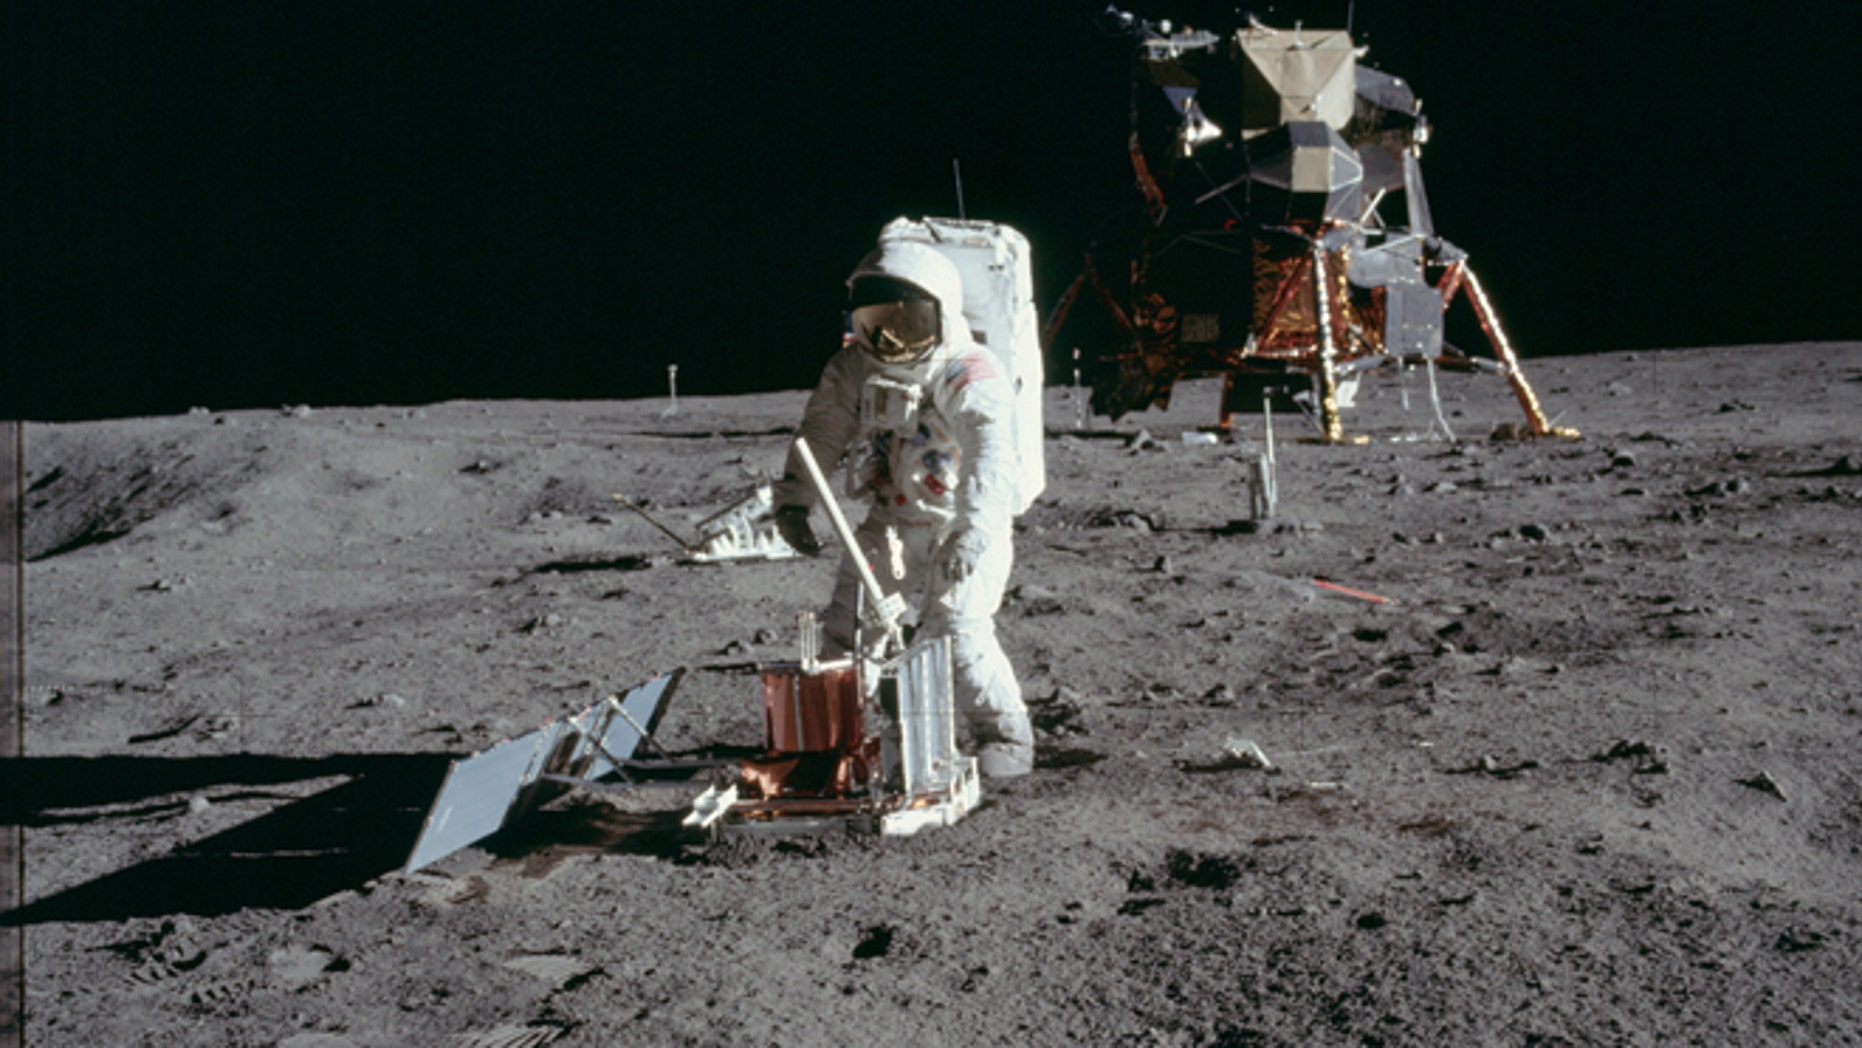 "Astronaut Edwin E. Aldrin Jr., lunar module pilot, deploys a scientific research package on the surface of the moon near the Lunar Module ""Eagle"" during the Apollo 11 extravehicular activity (EVA) in this July 20, 1969"